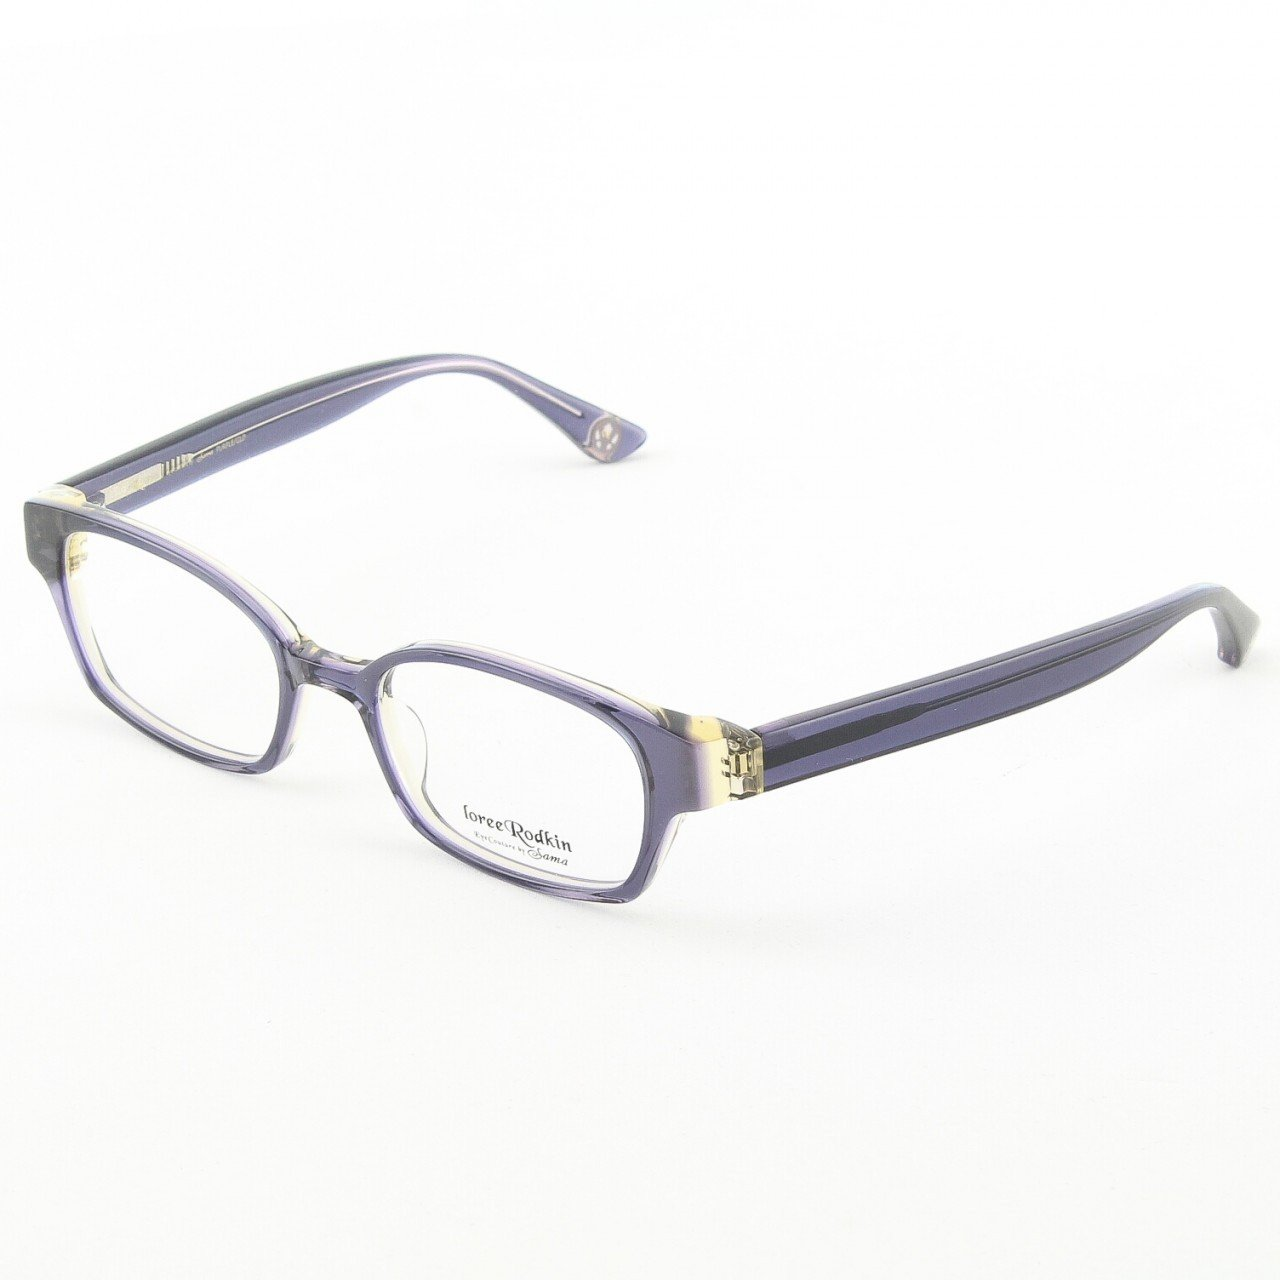 Loree Rodkin Evan Eyeglasses by Sama Col. Purple and Gold with Clear Lenses